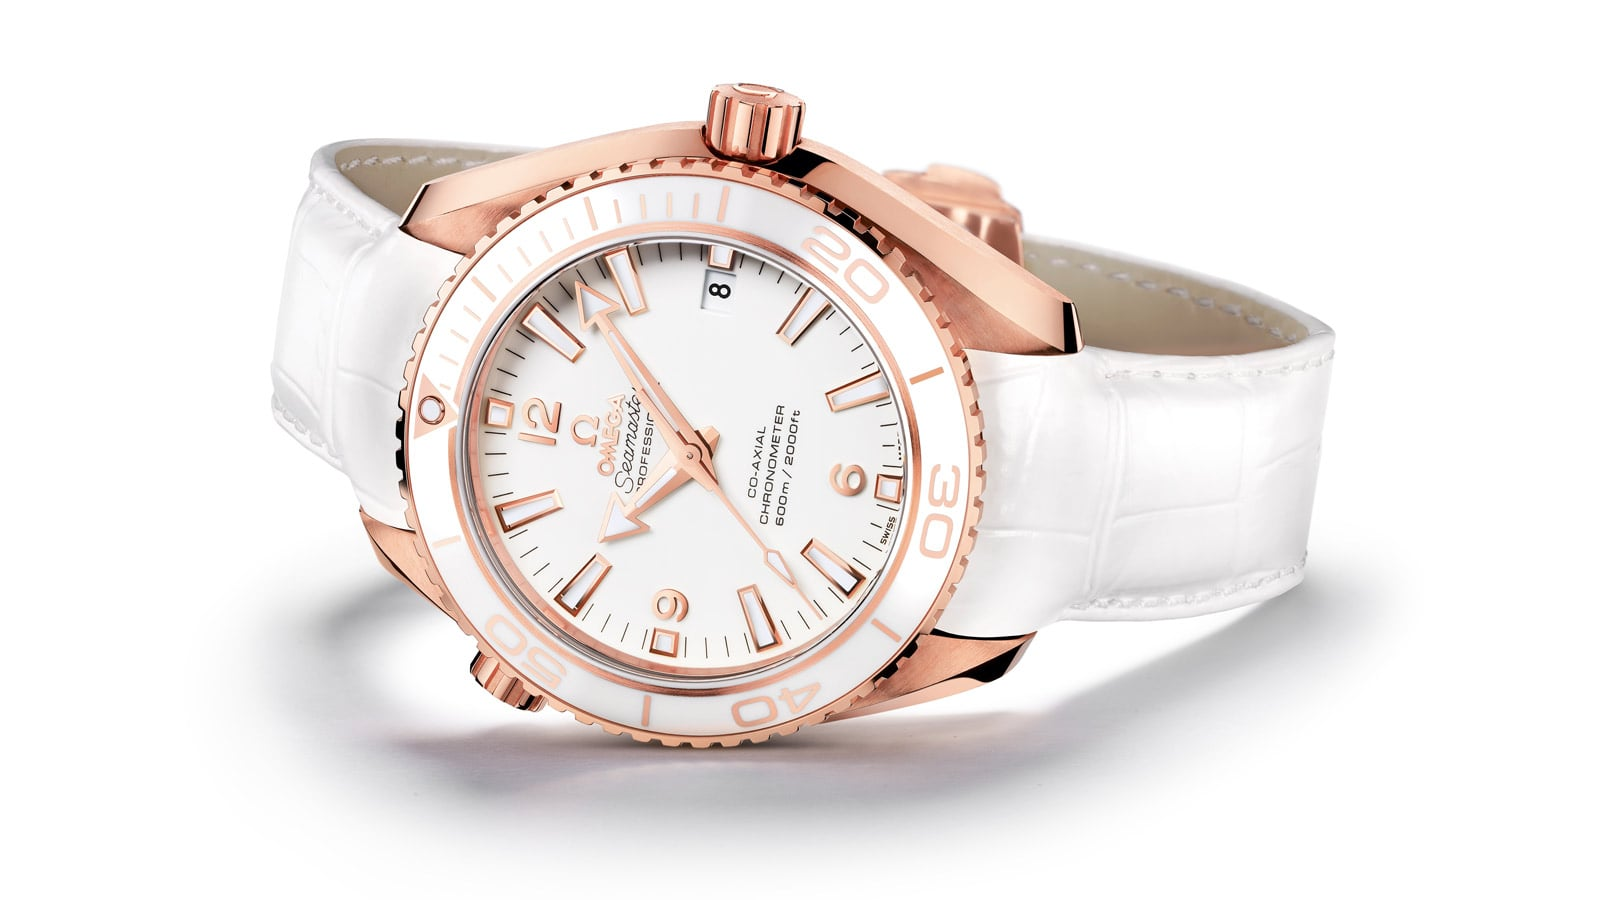 THE OMEGA SEAMASTER PLANET OCEAN CERAGOLD COLLECTION